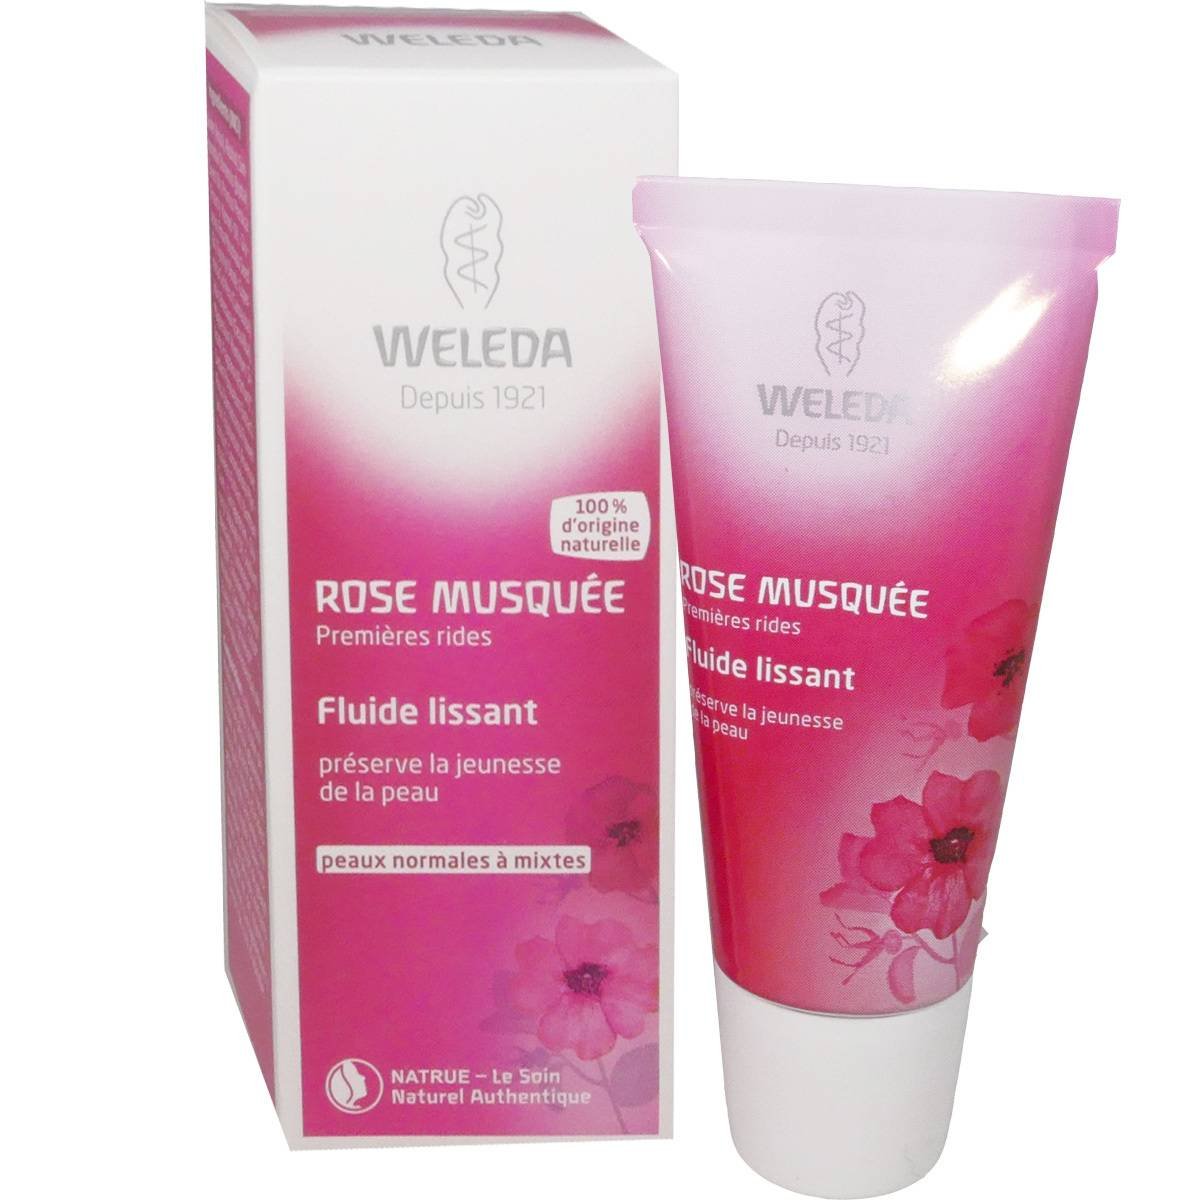 Weleda rose musquee fluide lissant